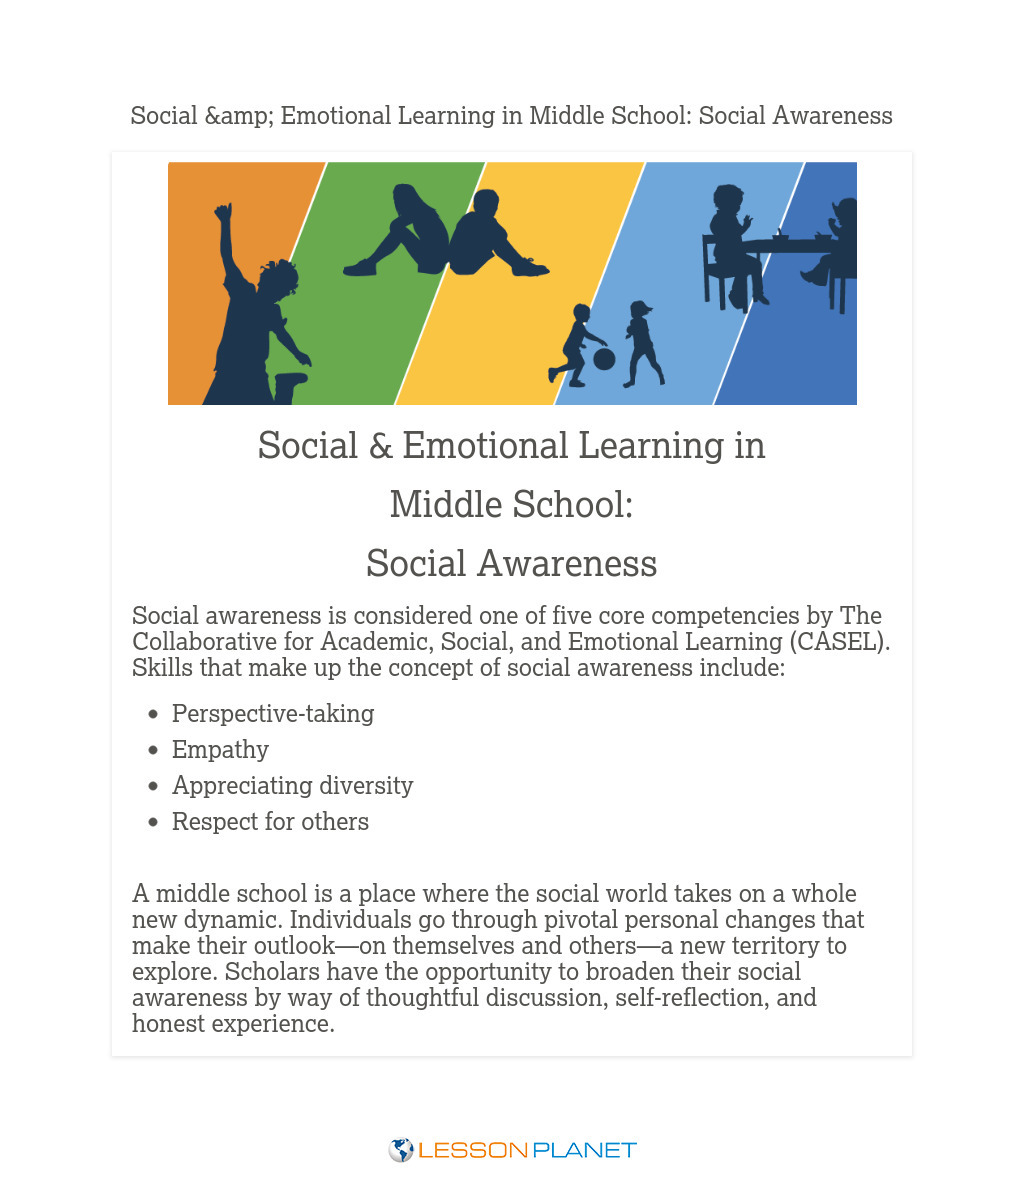 Social & Emotional Learning in Middle School: Social Awareness